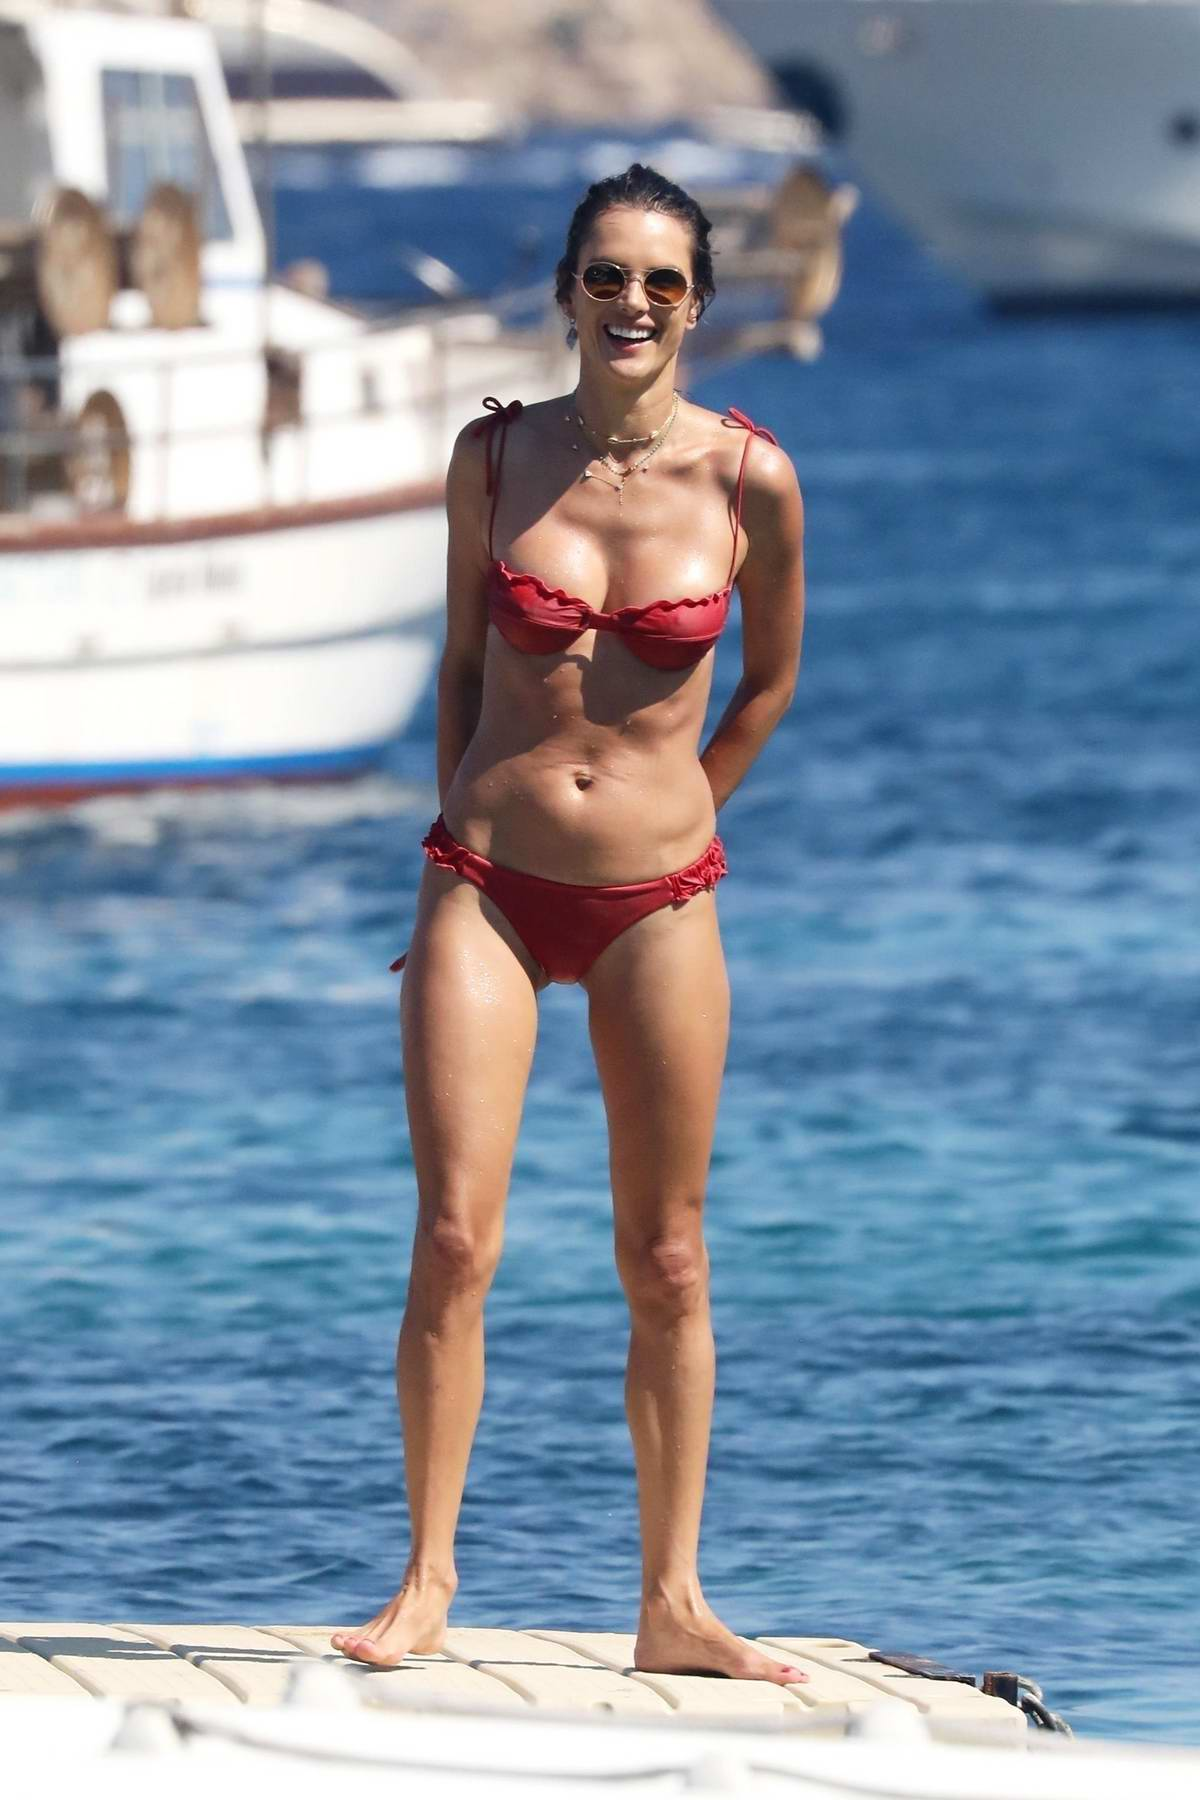 Alessandra Ambrosio rocks a red bikini while relaxing at the beach during her vacation in Mykonos, Greece